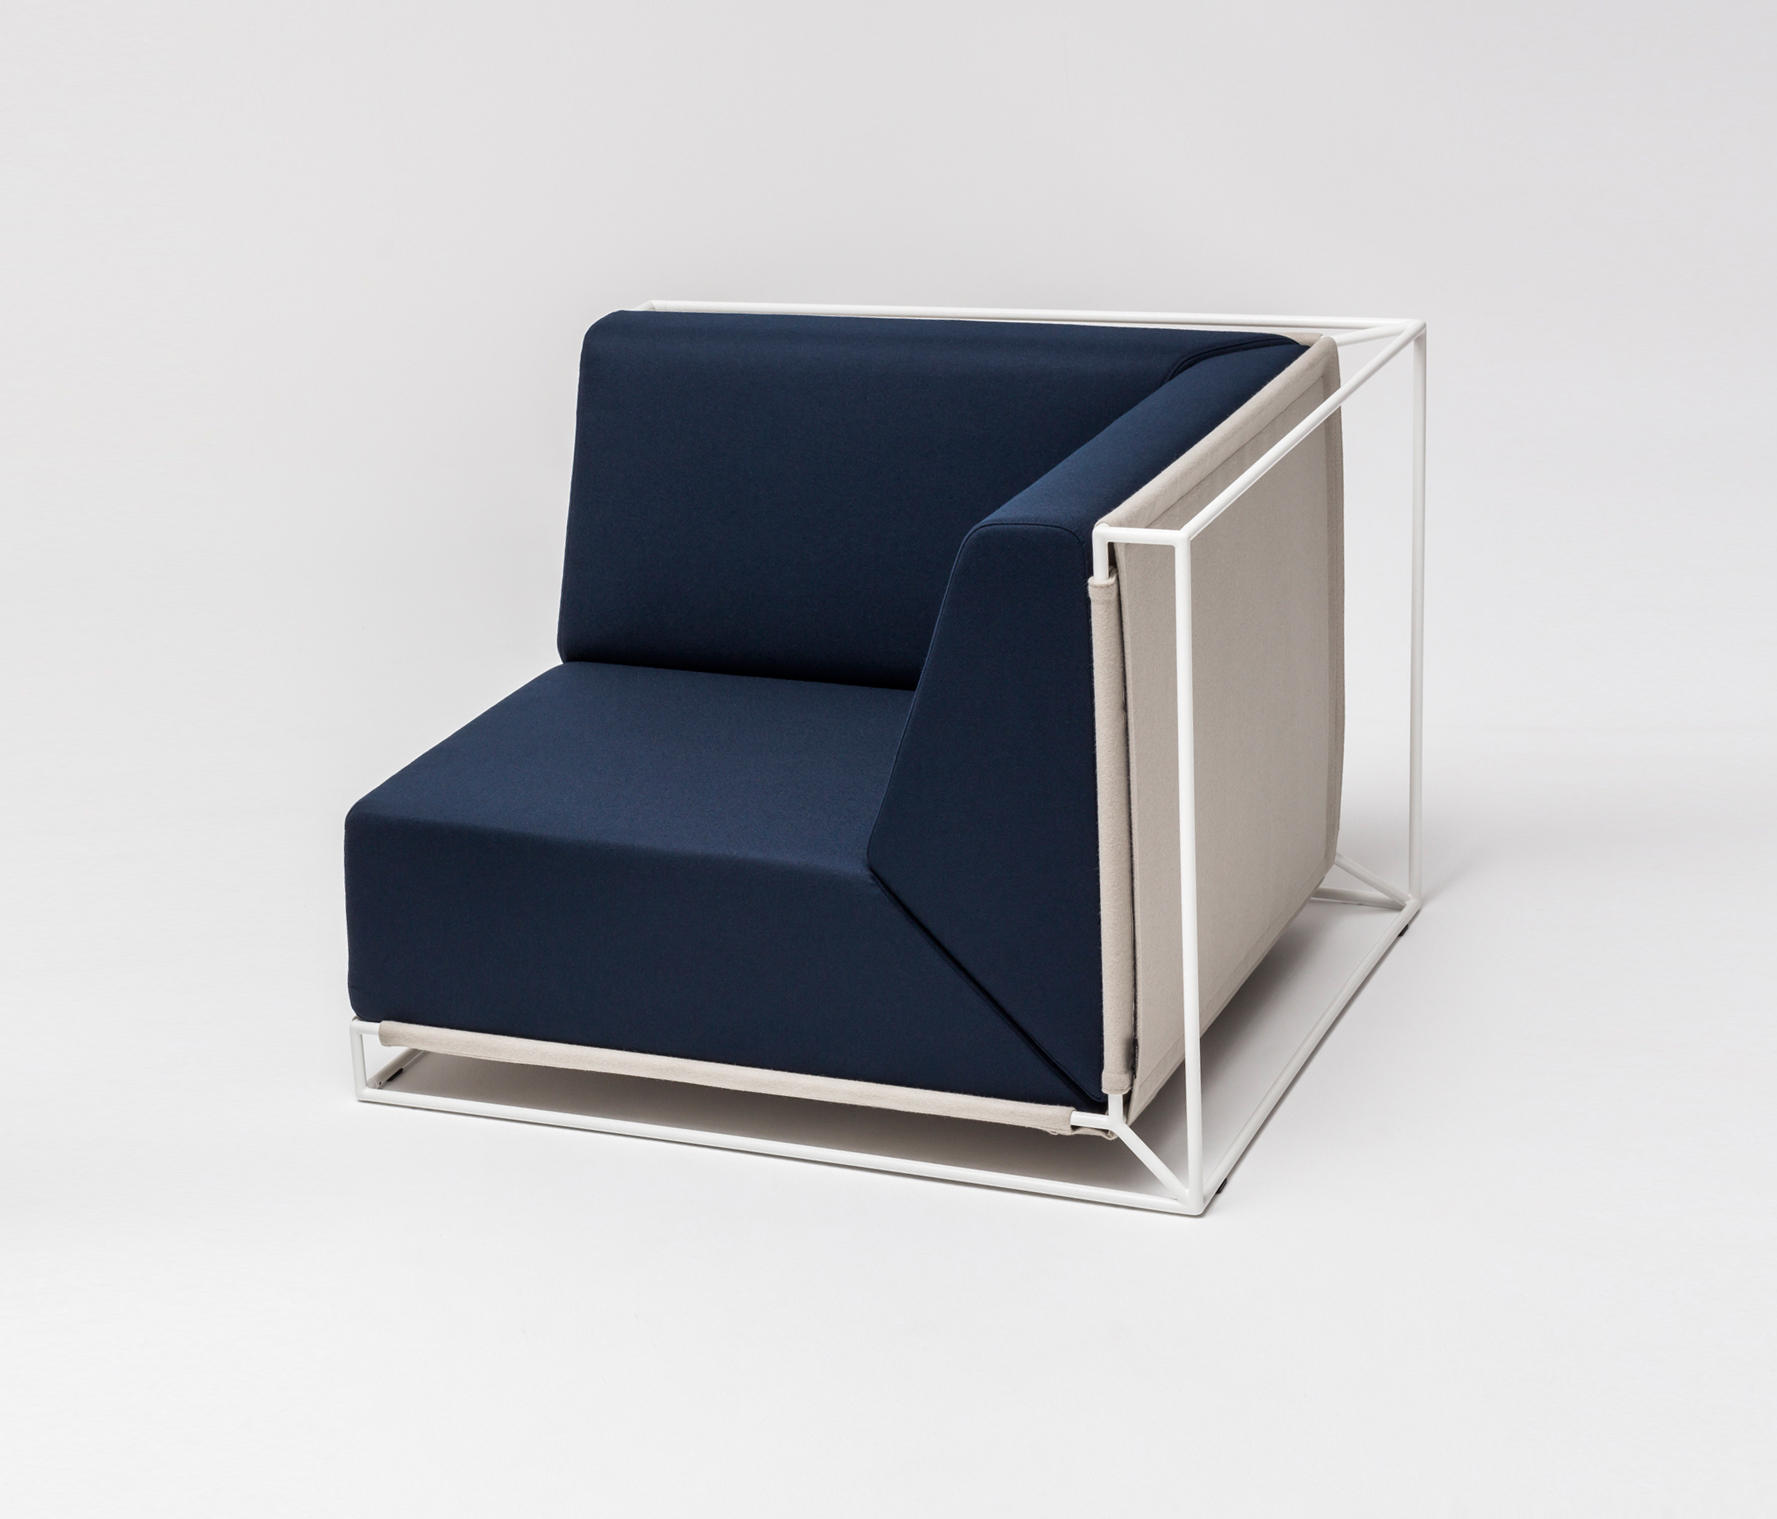 Floating Armchair By Comforty | Modular Seating Elements